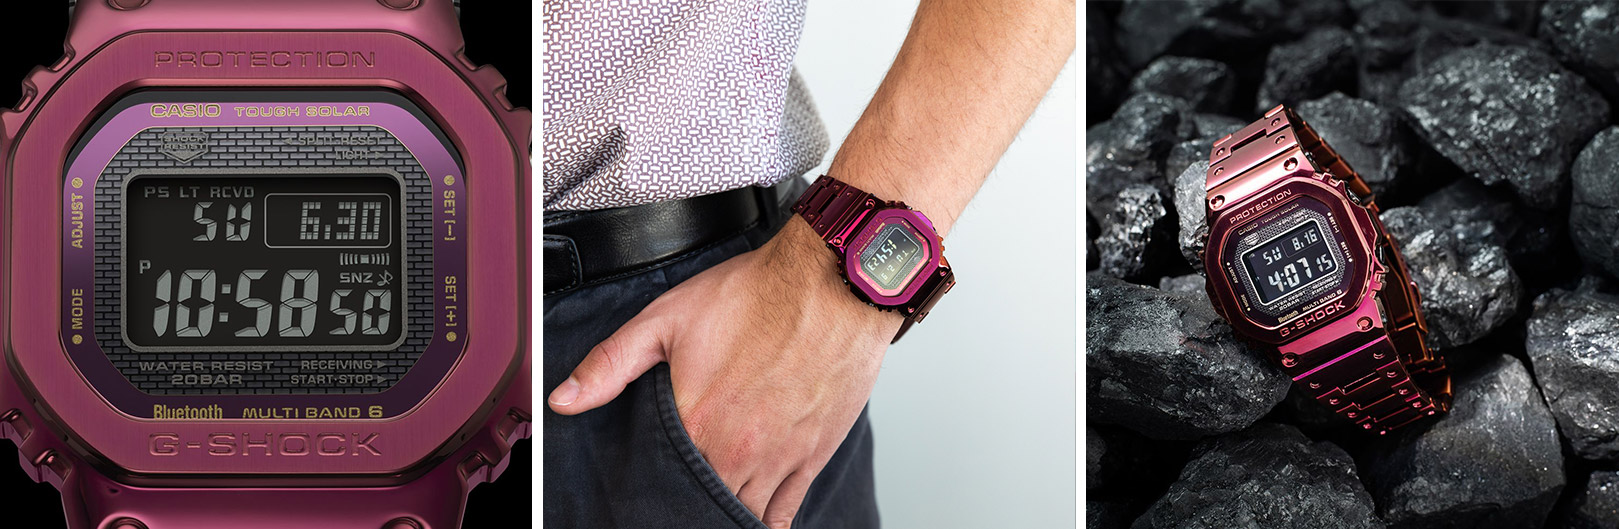 GMWB5000RD-4D from our best g-shock square watches for daily wearing